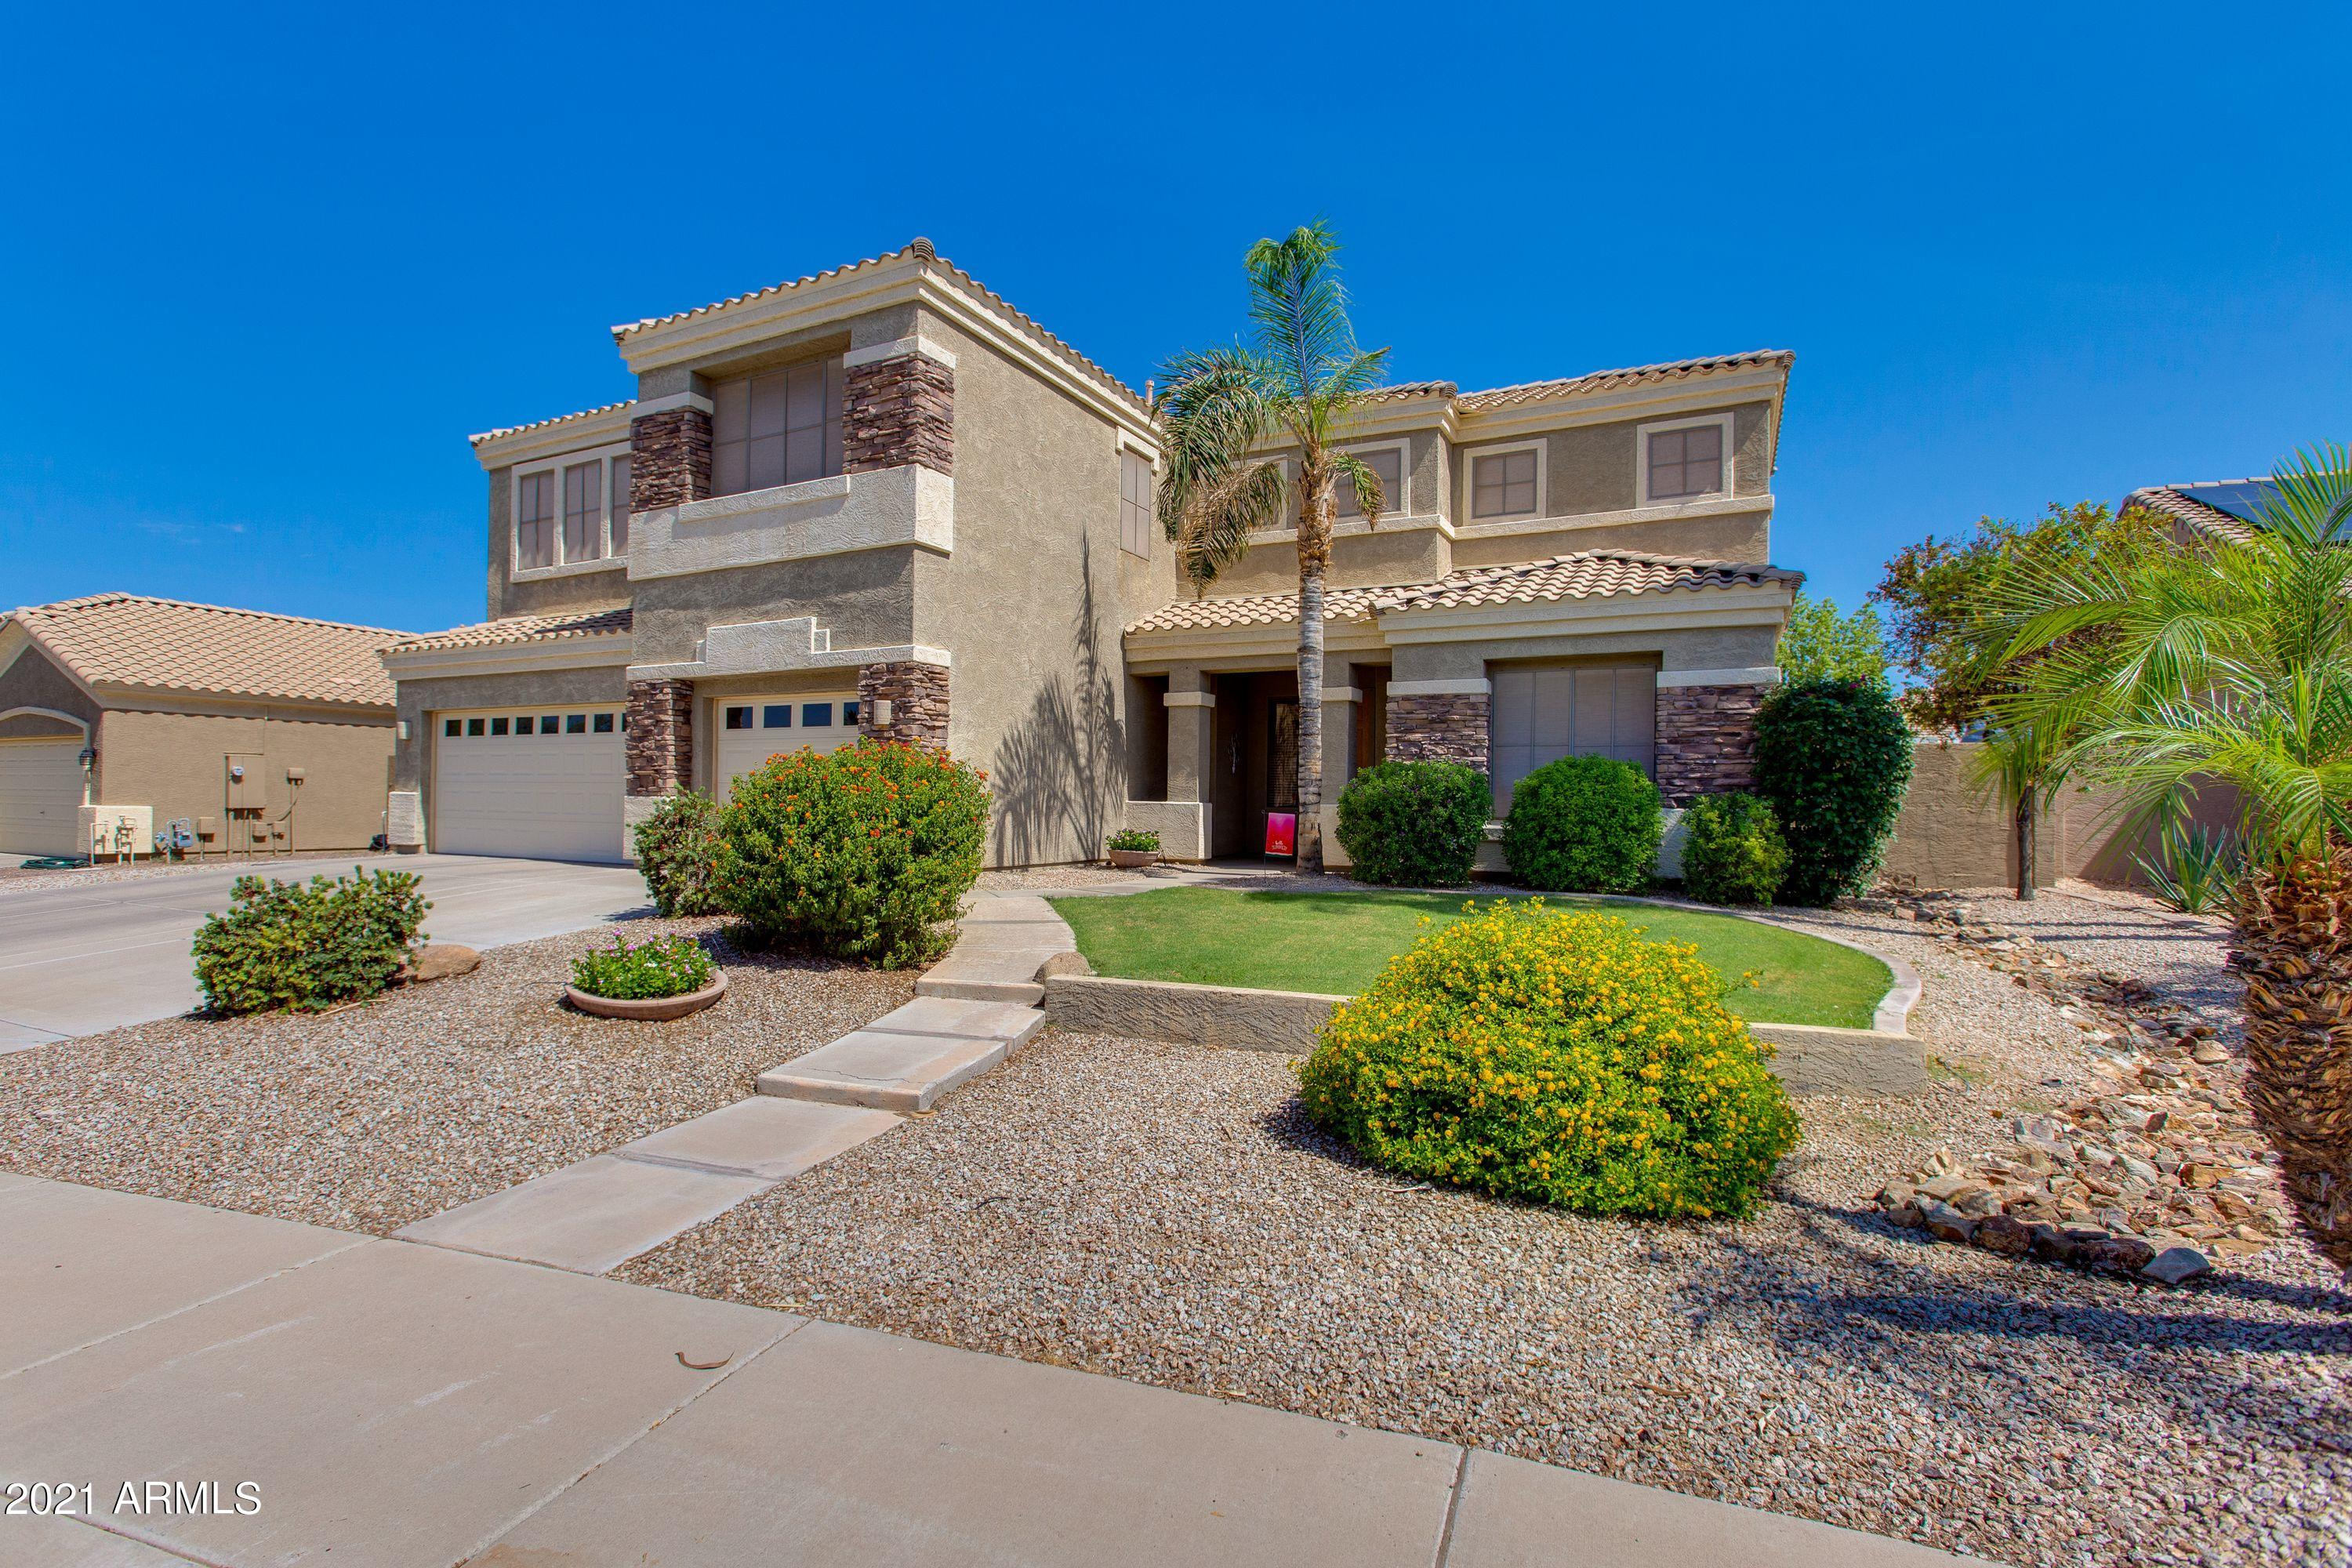 This spacious and beautifully maintained property is located near plenty of great shopping and dining at SanTan Village, as well as Loop 202 Freeway and ASU's Polytechnic Campus. Tucked away in the community of Chaparral Estates, this two story home offers 5 bedrooms, an office, and a loft/flex space. The open eat-in kitchen flows nicely into the family room and features shaker style cabinetry, corian countertops, and a large center island with breakfast bar. With an oversized laundry room and 3 car garage, there is an abundance of interior storage space and built-in cabinetry. Outside in the backyard oasis is where you want to be! Enjoy a covered patio, outdoor kitchen, firepit with seating, lush grass, green foliage, and an inviting Pebble Tec pool and spa. You won't want to miss this!